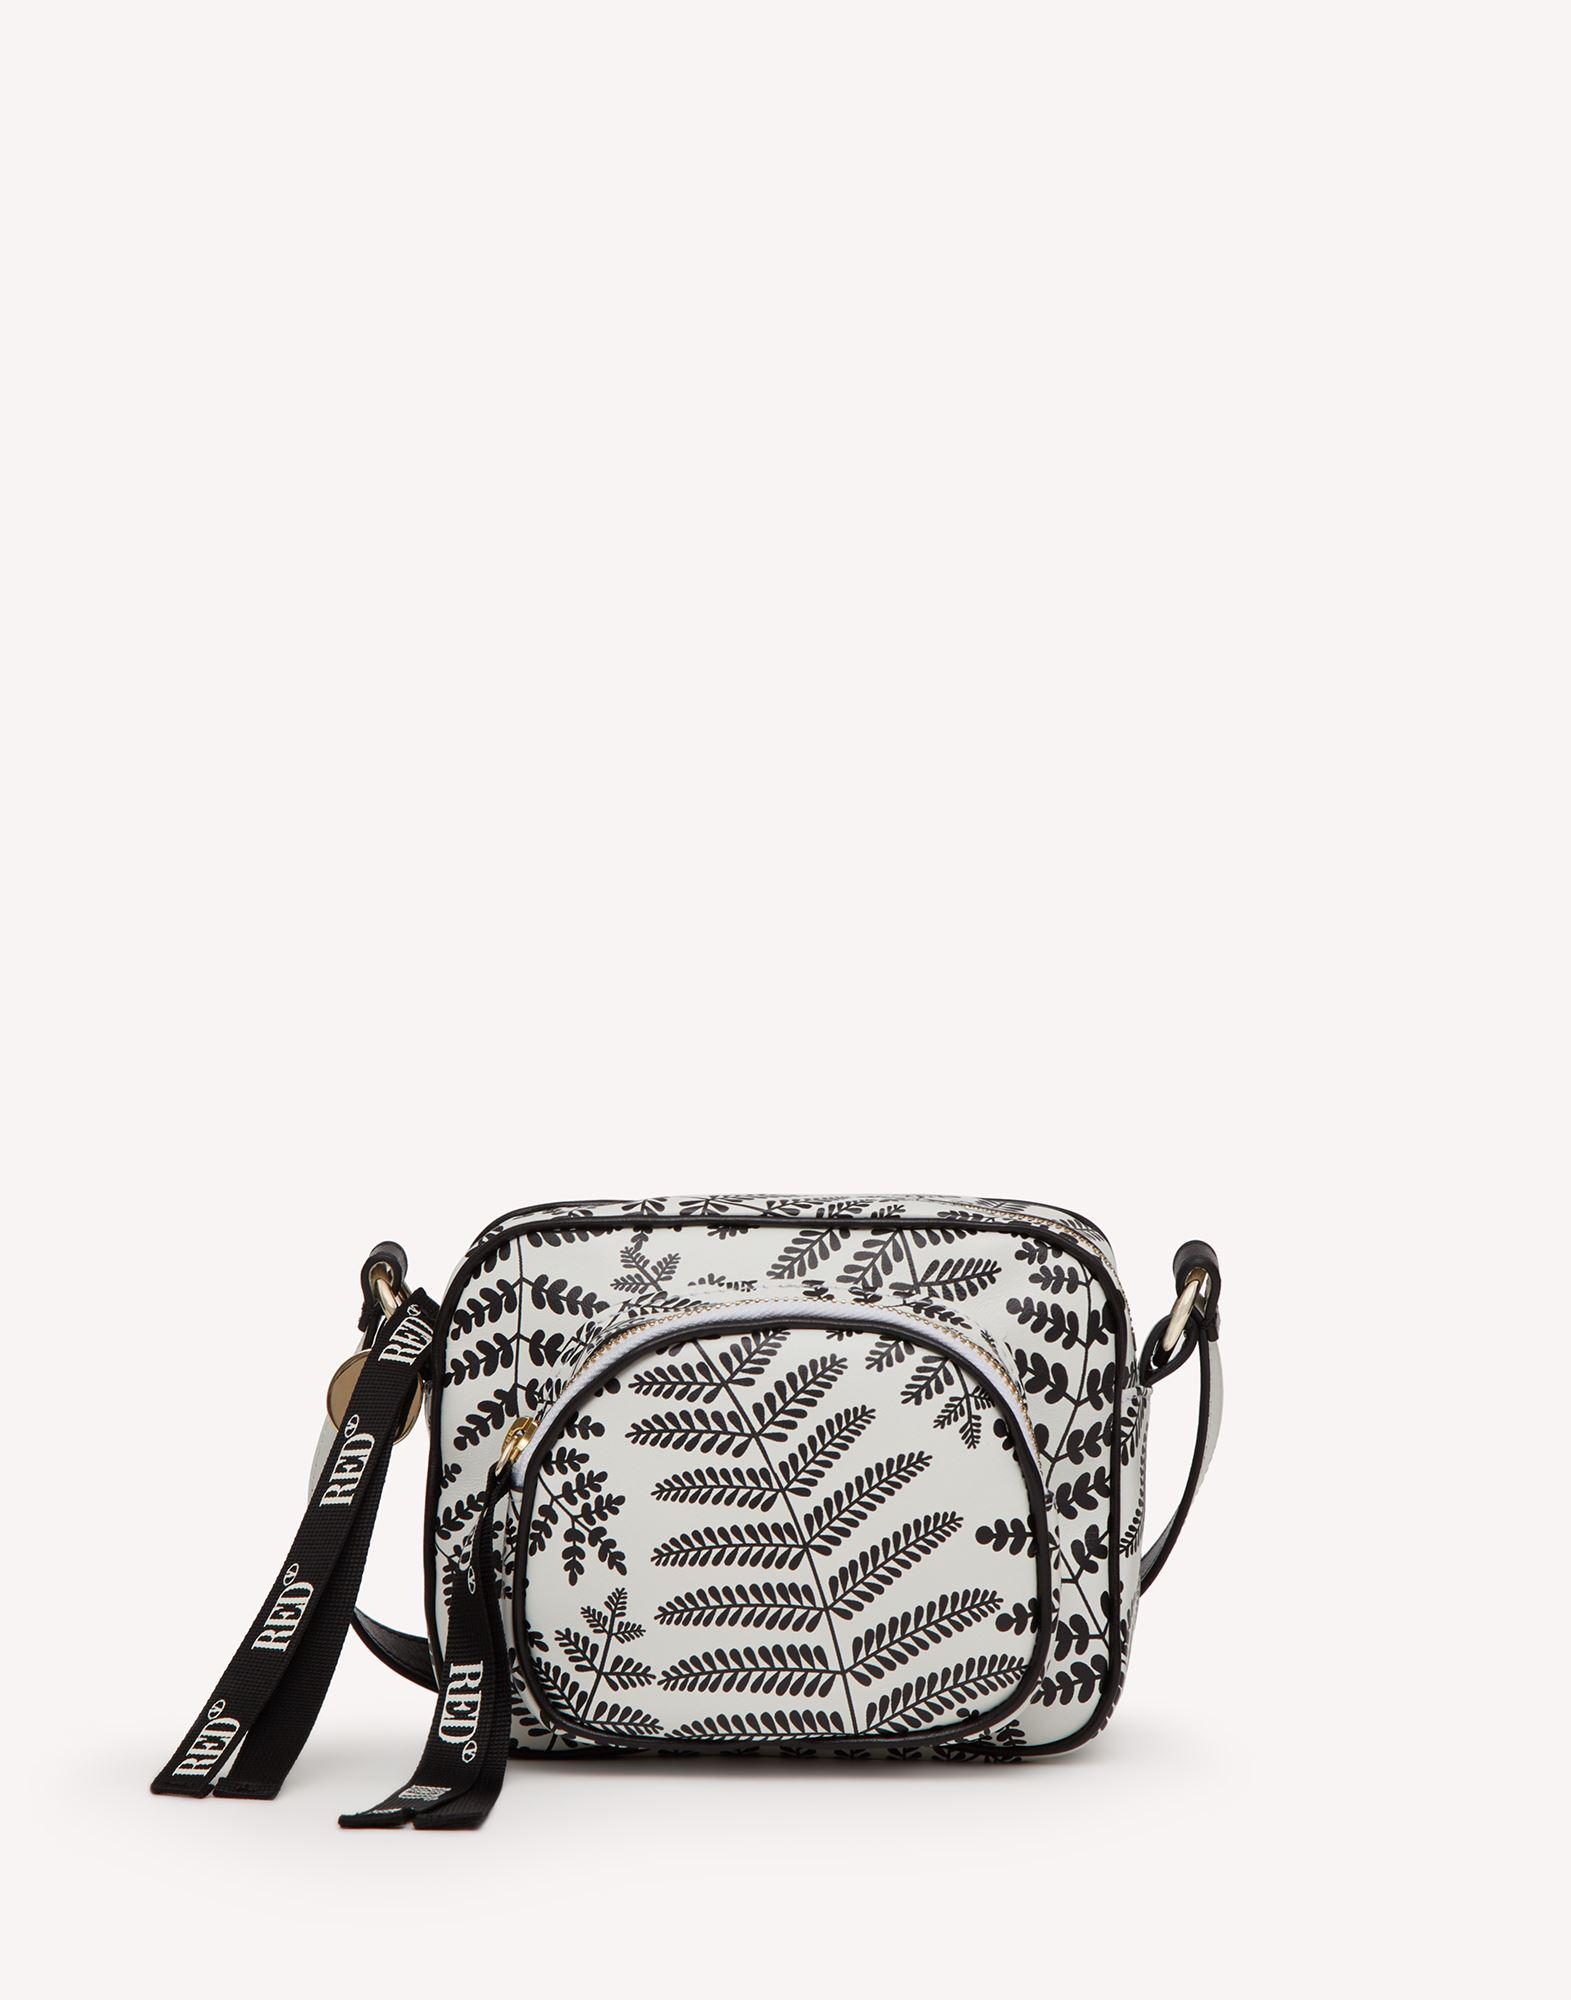 CHELSEA IN BLOOM LIMITED EDITION - PRINTED CROSSBODY BAG